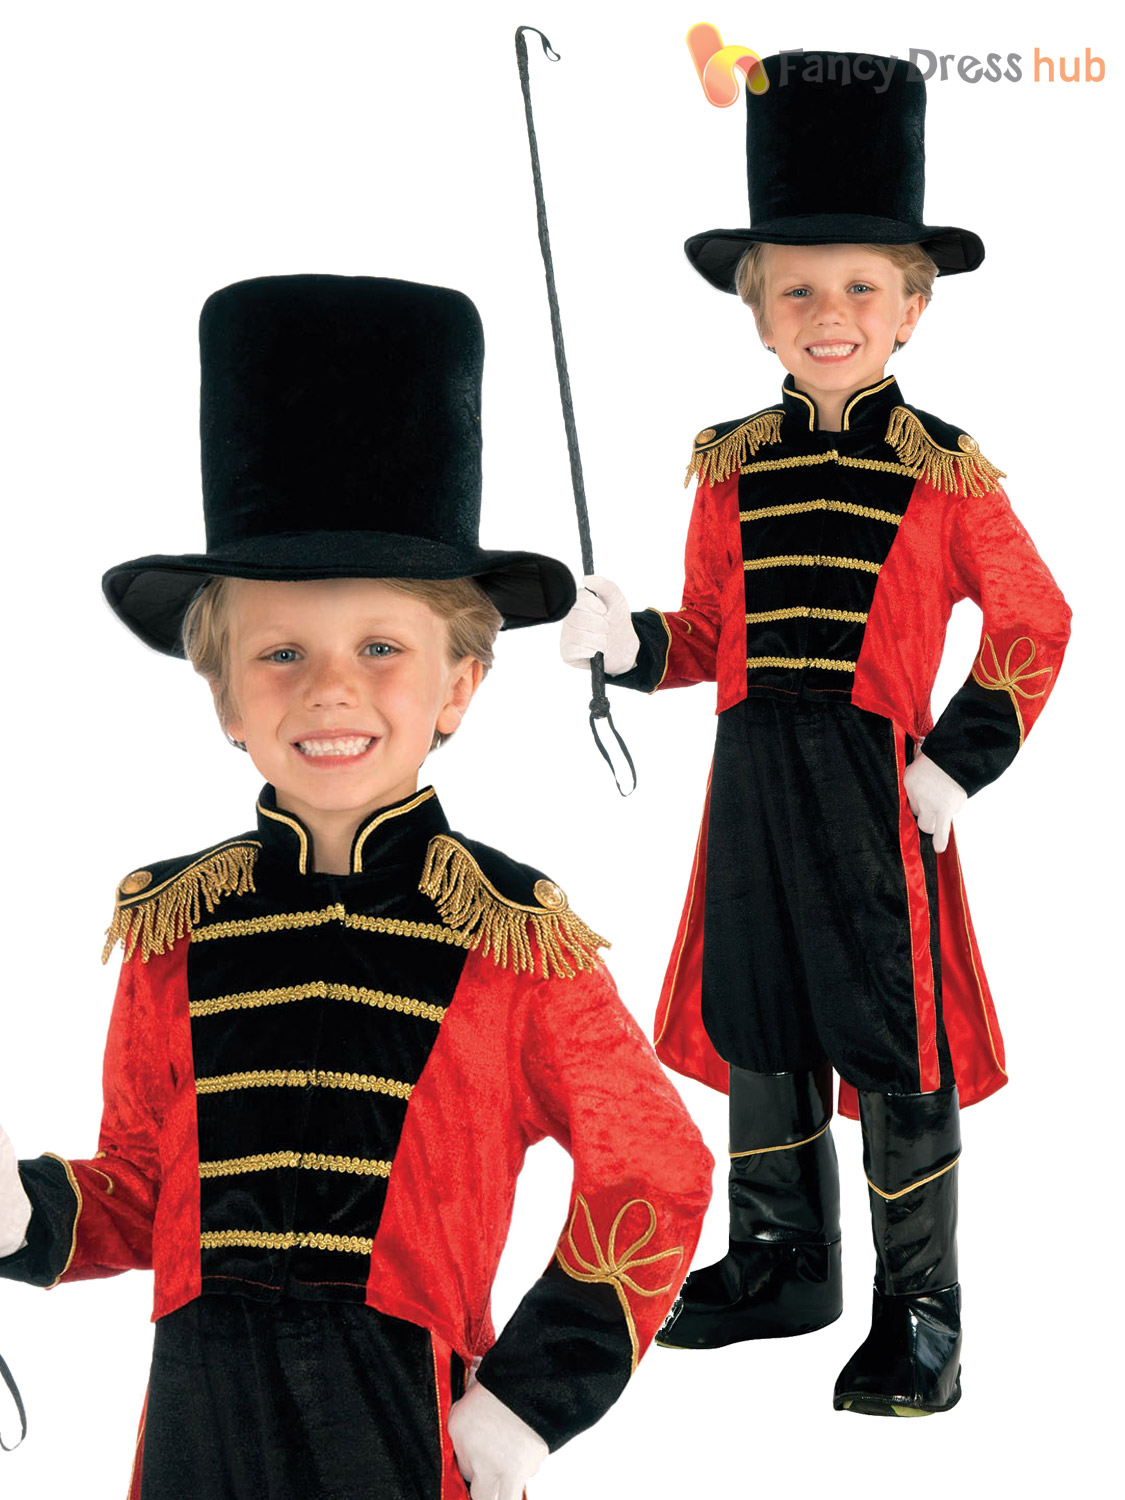 ... circus performer costume · age 4 8 boys ring master fancy dress ...  sc 1 st  Best Kids Costumes & Circus Costume For Kids - Best Kids Costumes